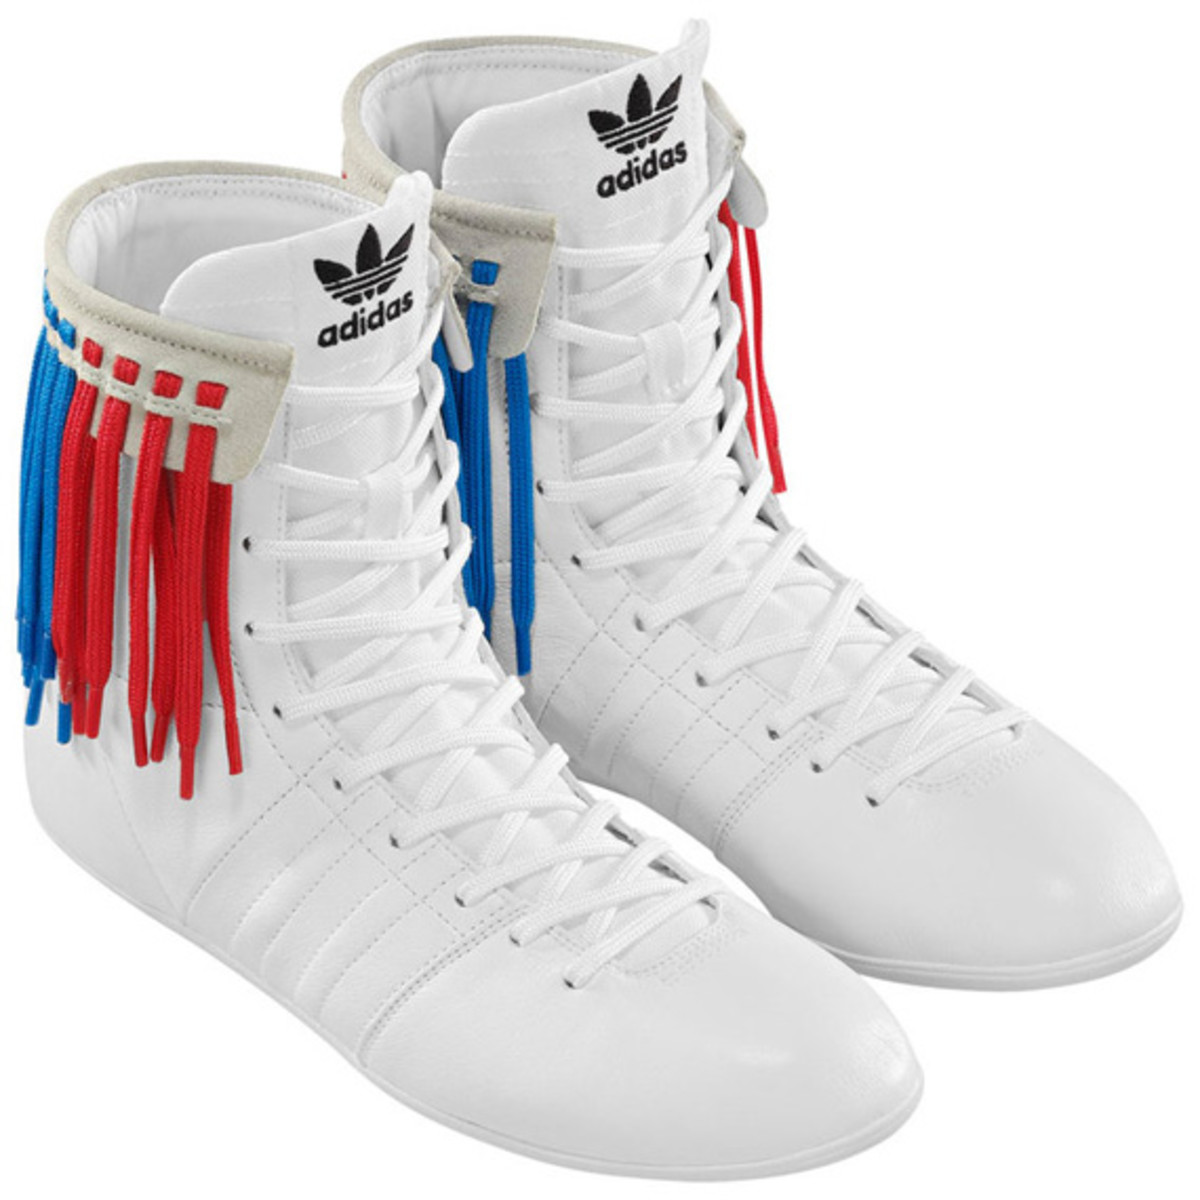 adidas-originals-fw2010-footwear-relaces-10